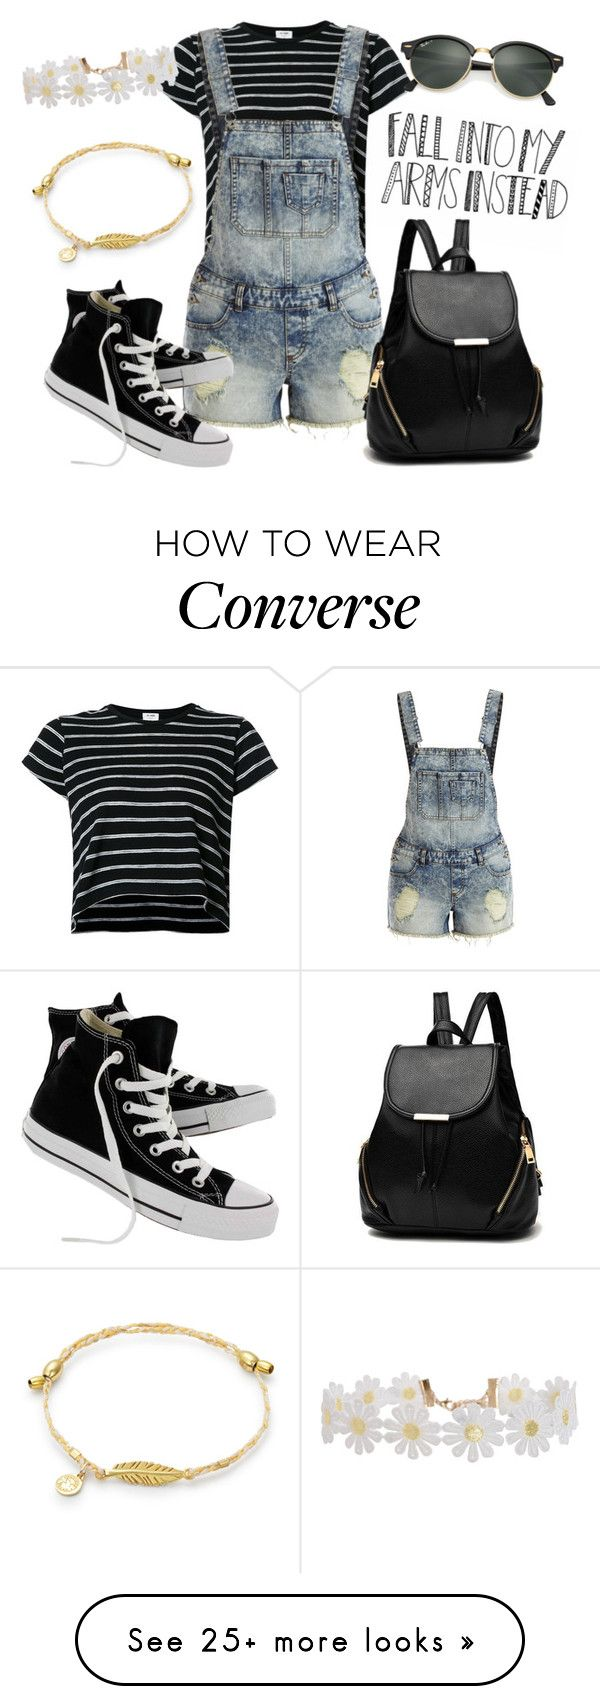 """""""Outfit #204"""" by catytomlinson95 on Polyvore featuring RE/DONE, VILA, Converse, Humble Chic and Ray-Ban"""